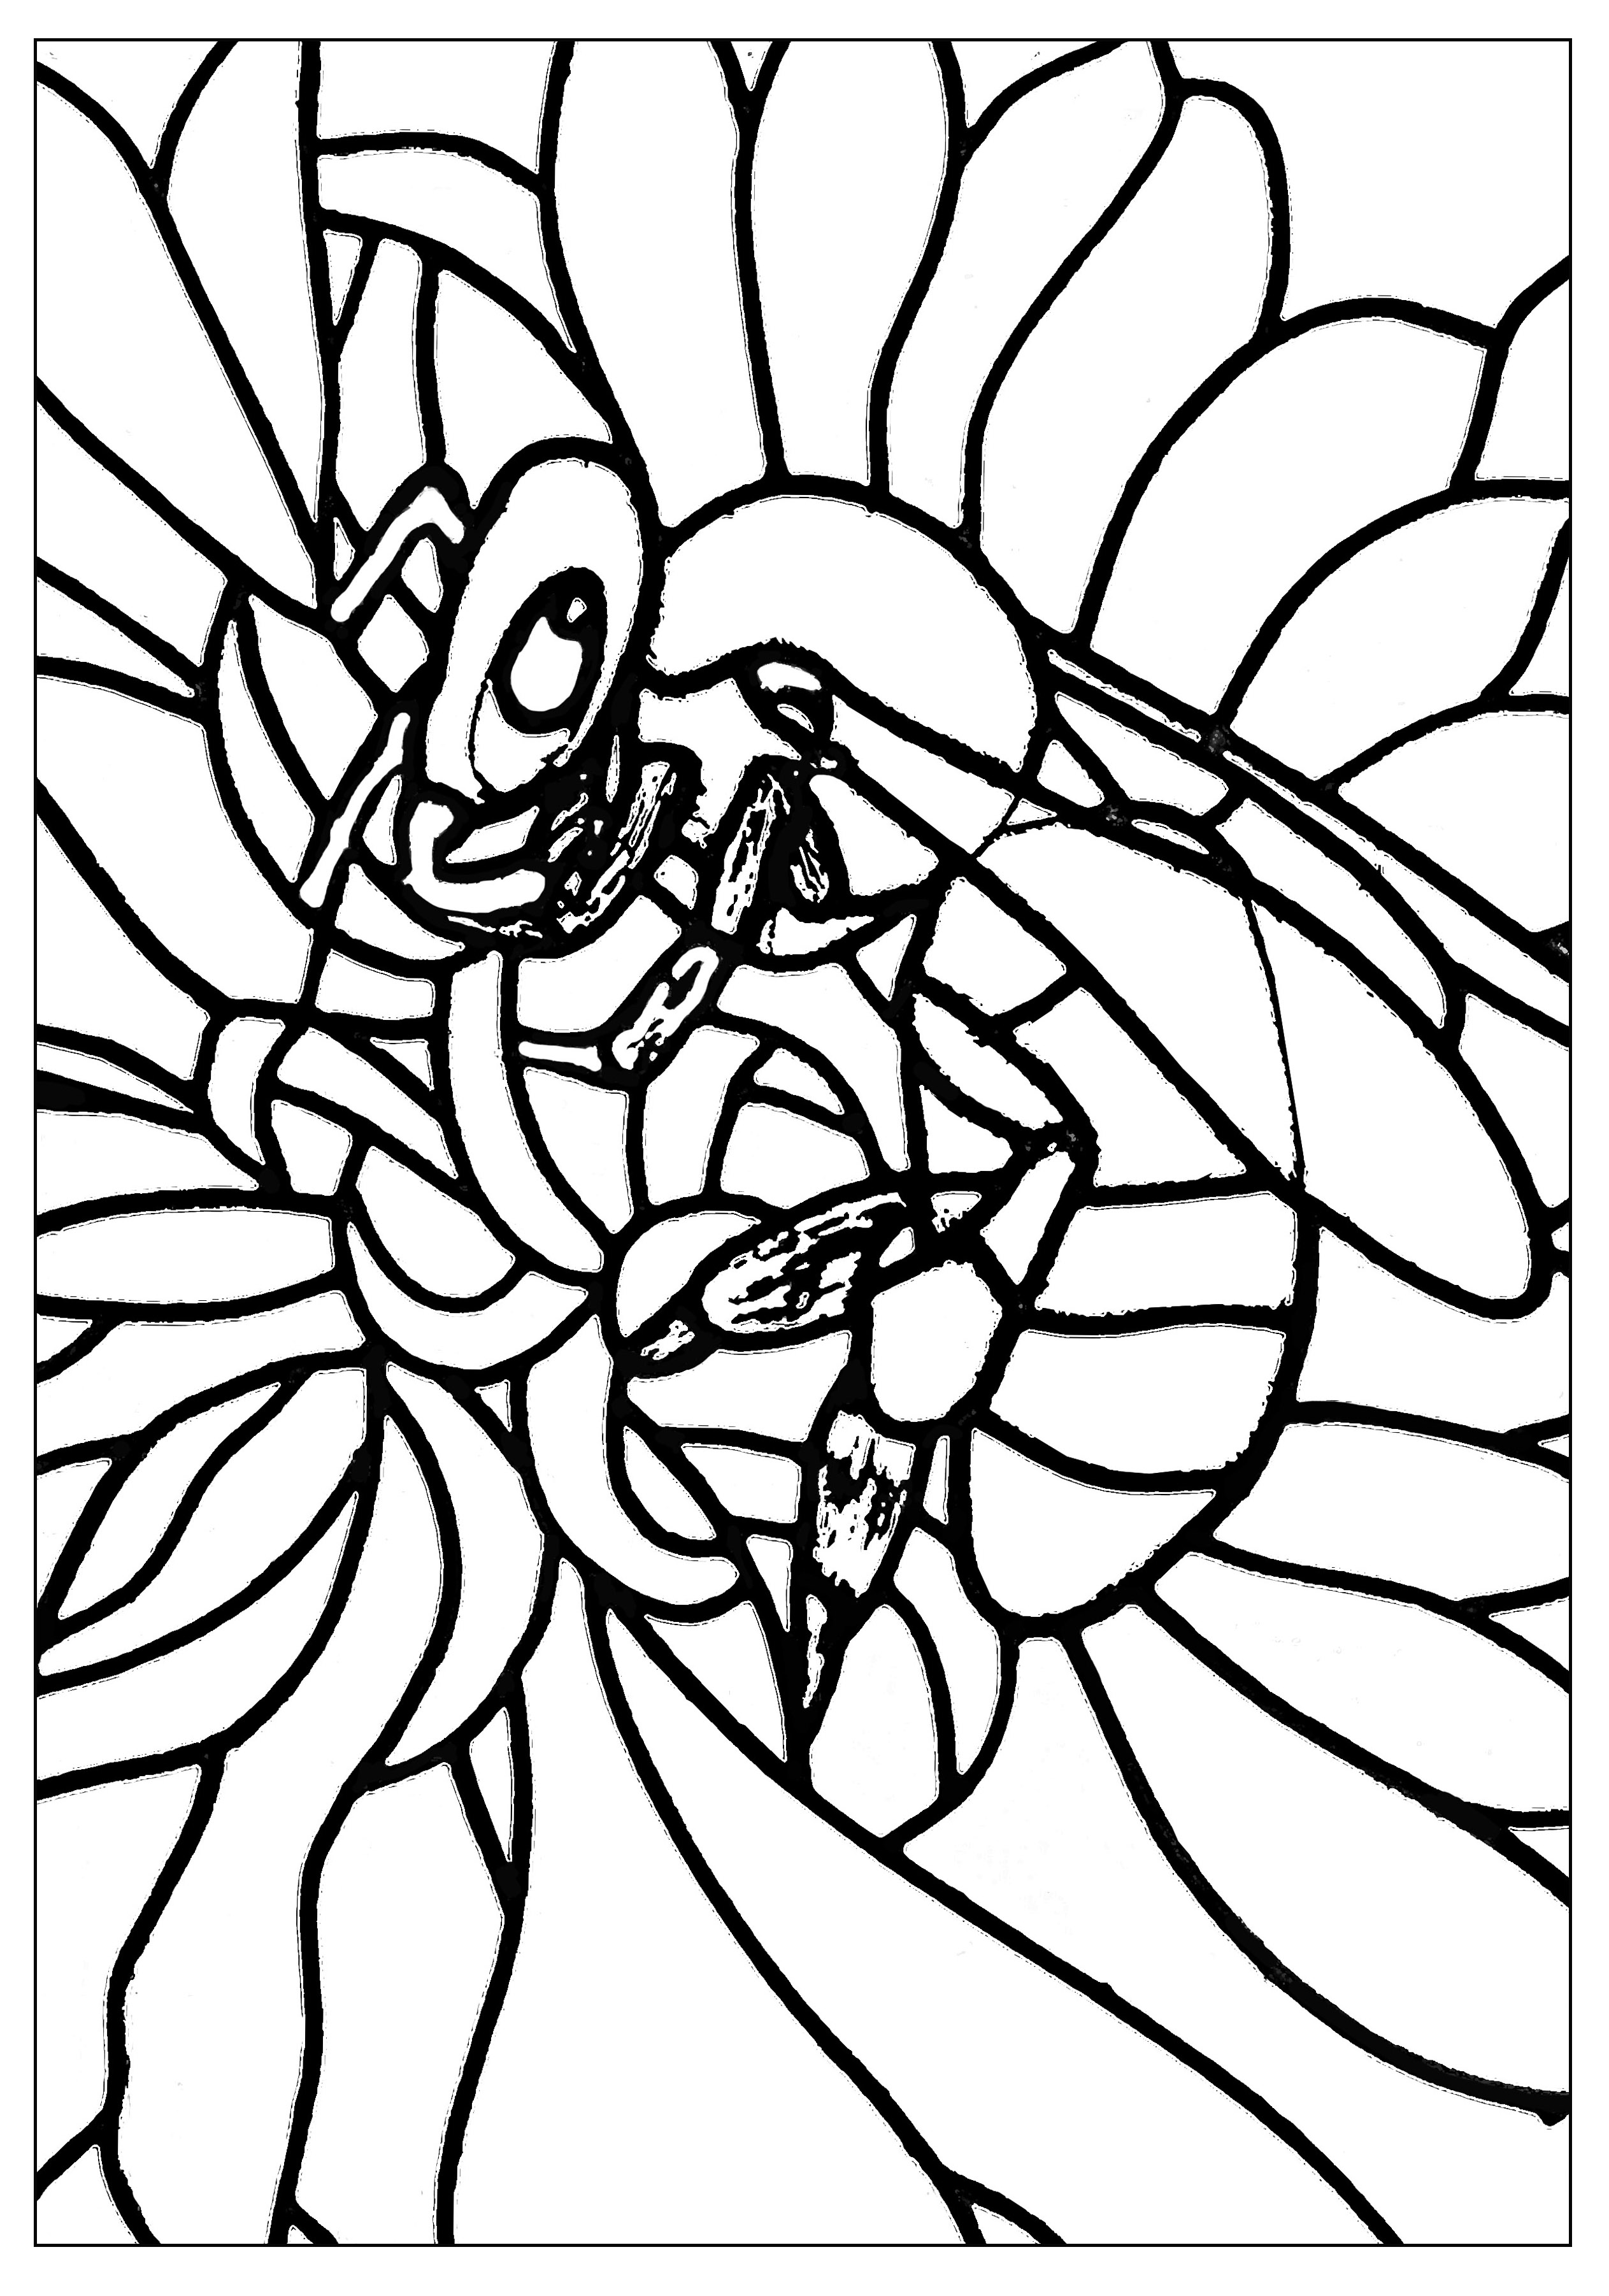 Free Adult coloring page to print and color